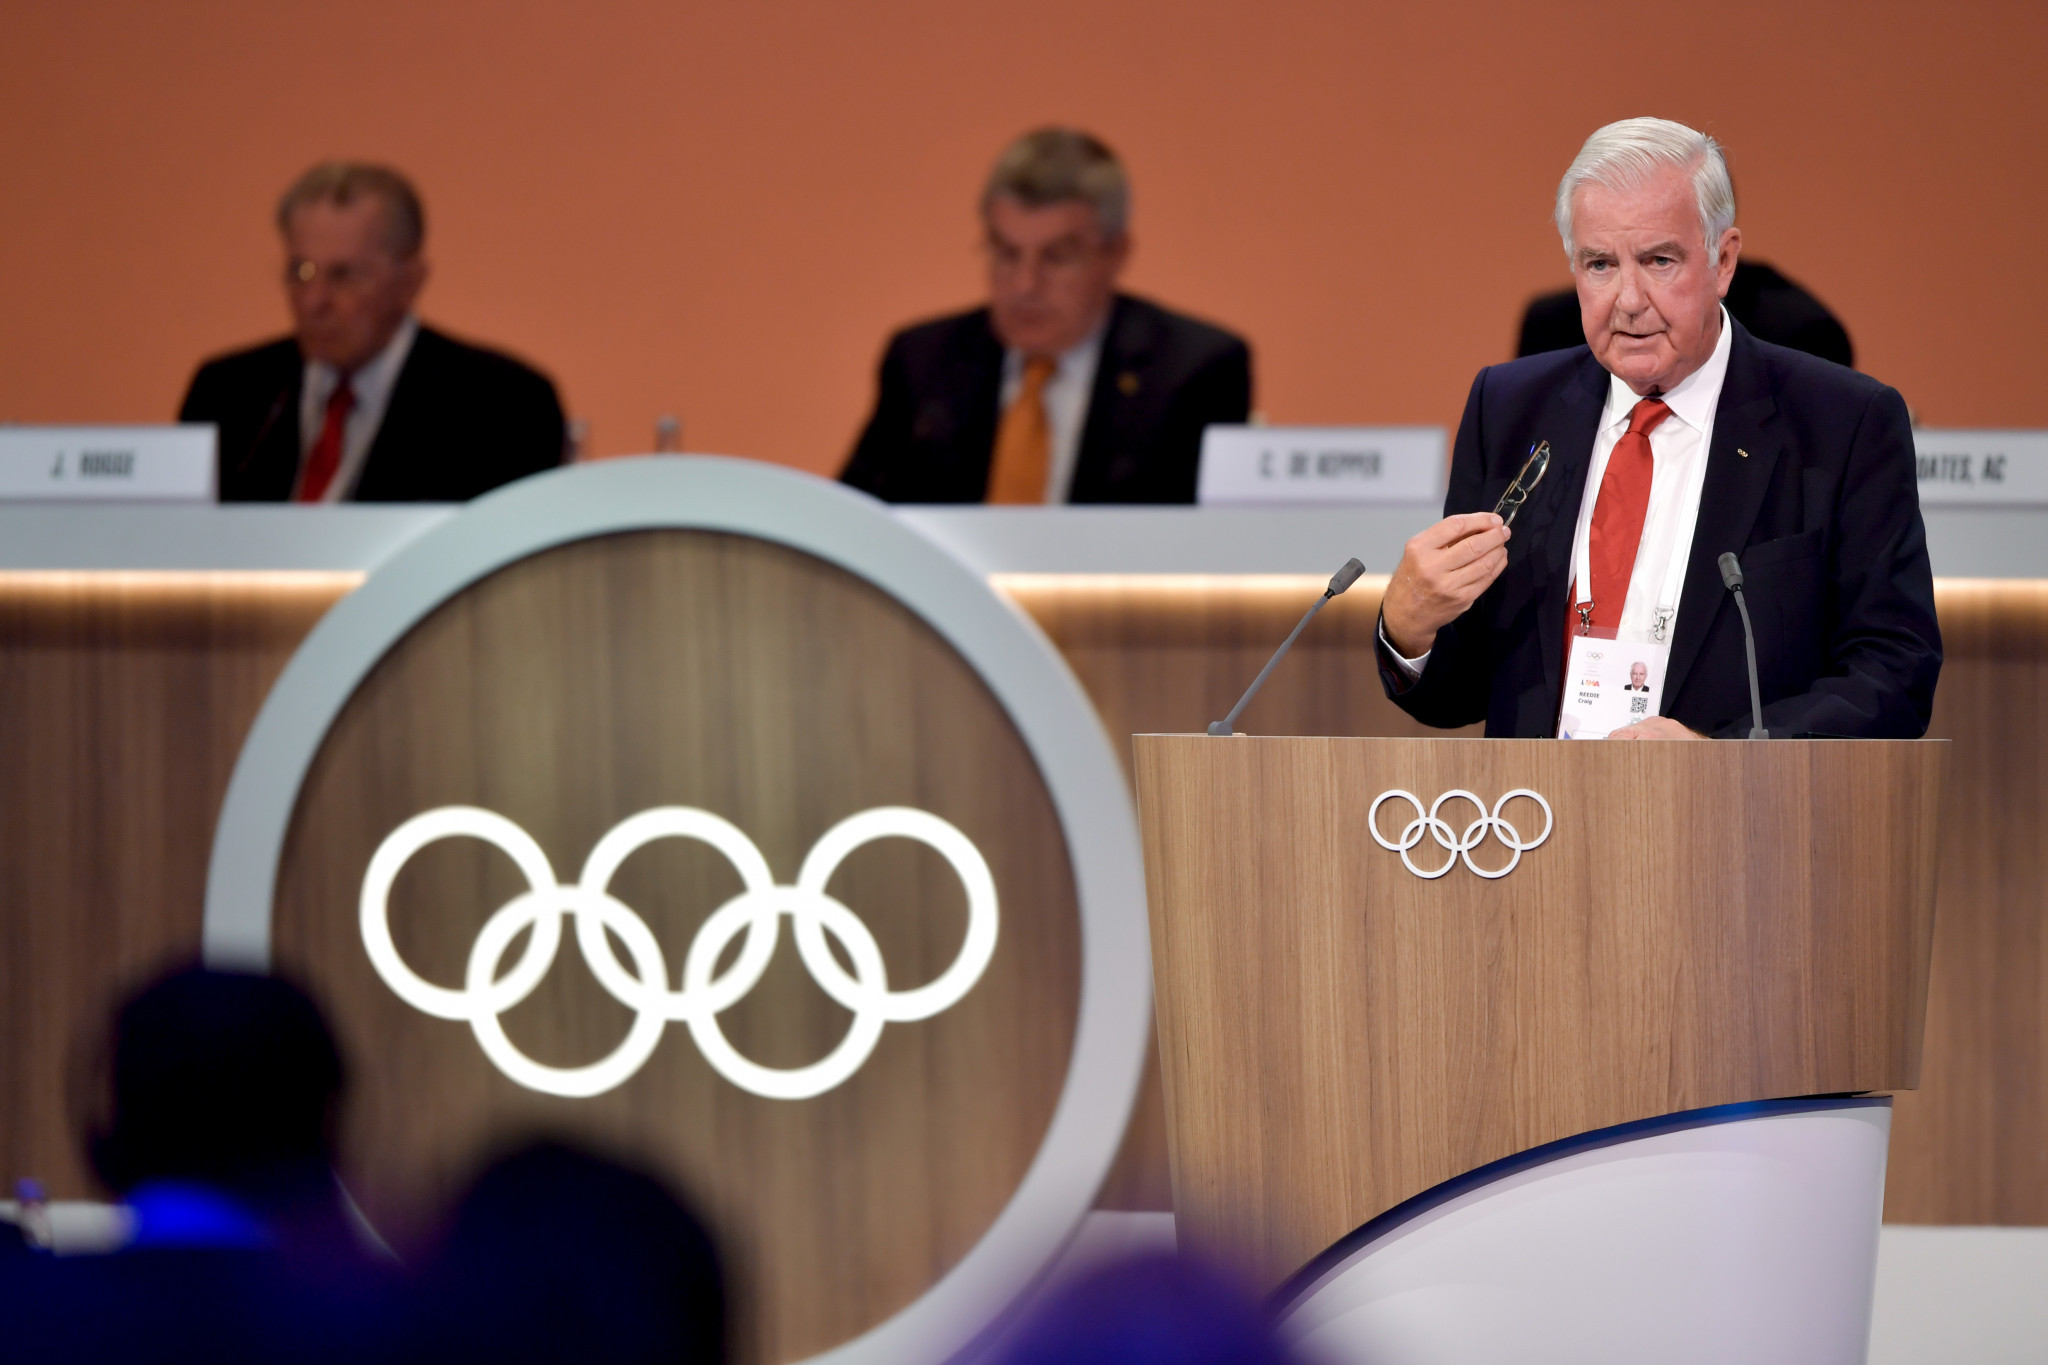 WADA President Sir Craig Reedie criticised a group of NADOs during the IOC Session in Lima last week for calling for a blanket ban on Russian athletes at Pyeongchang 2018 ©Getty Images